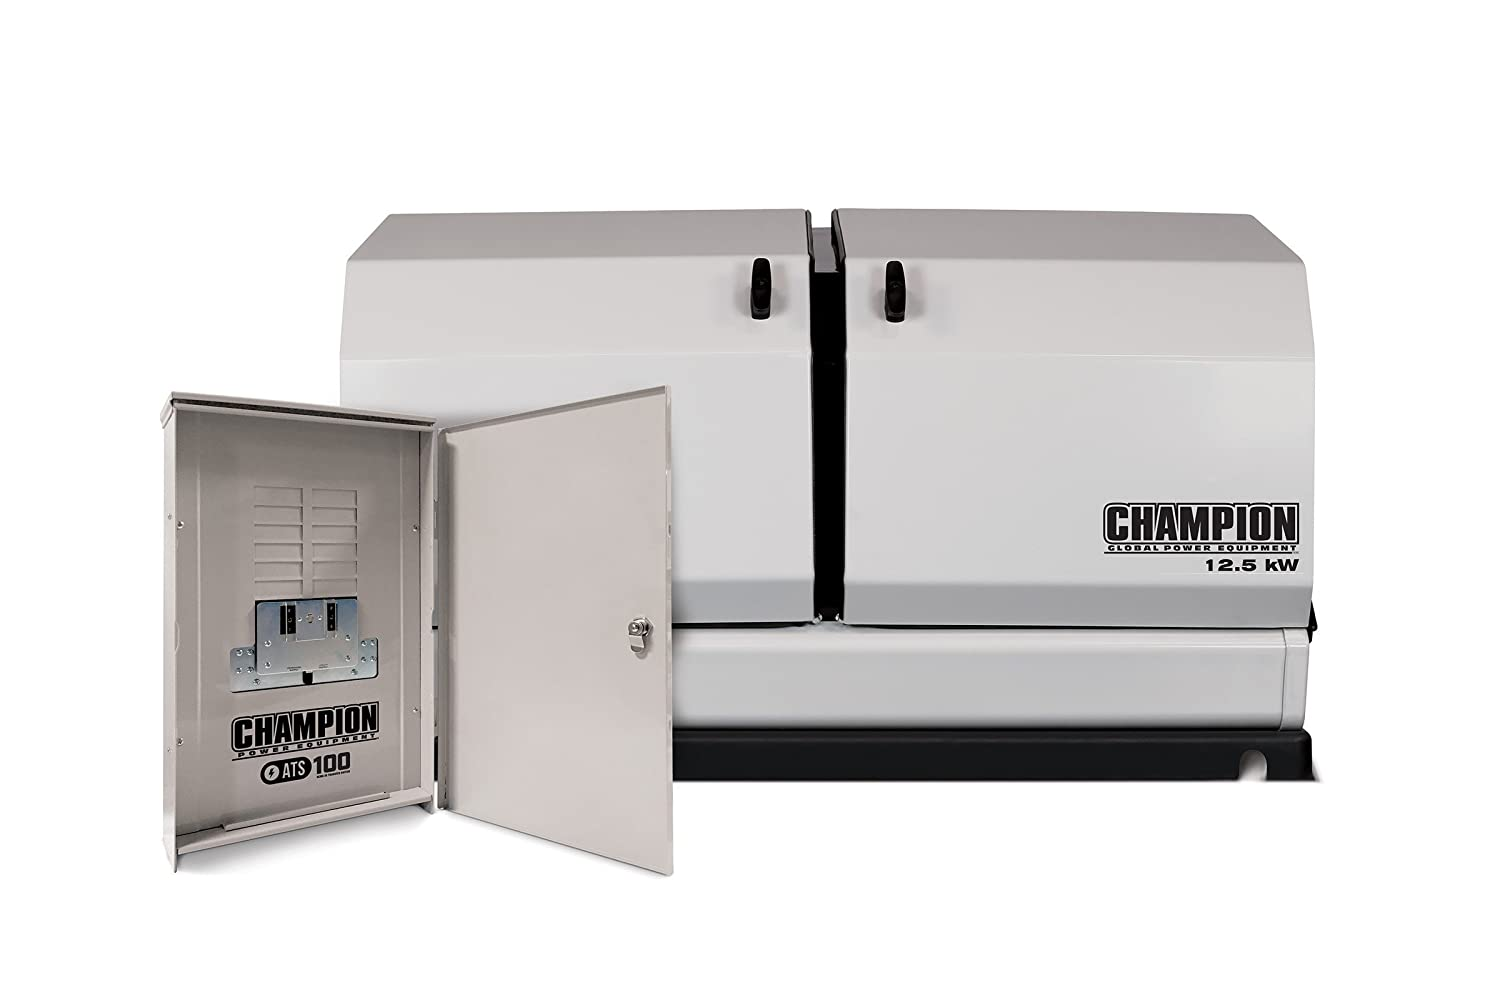 Champion 125 Kw Home Standby Generator With 100 Amp Wiring Diagram Whole House Automatic Outdoor Rated Transfer Switch Garden